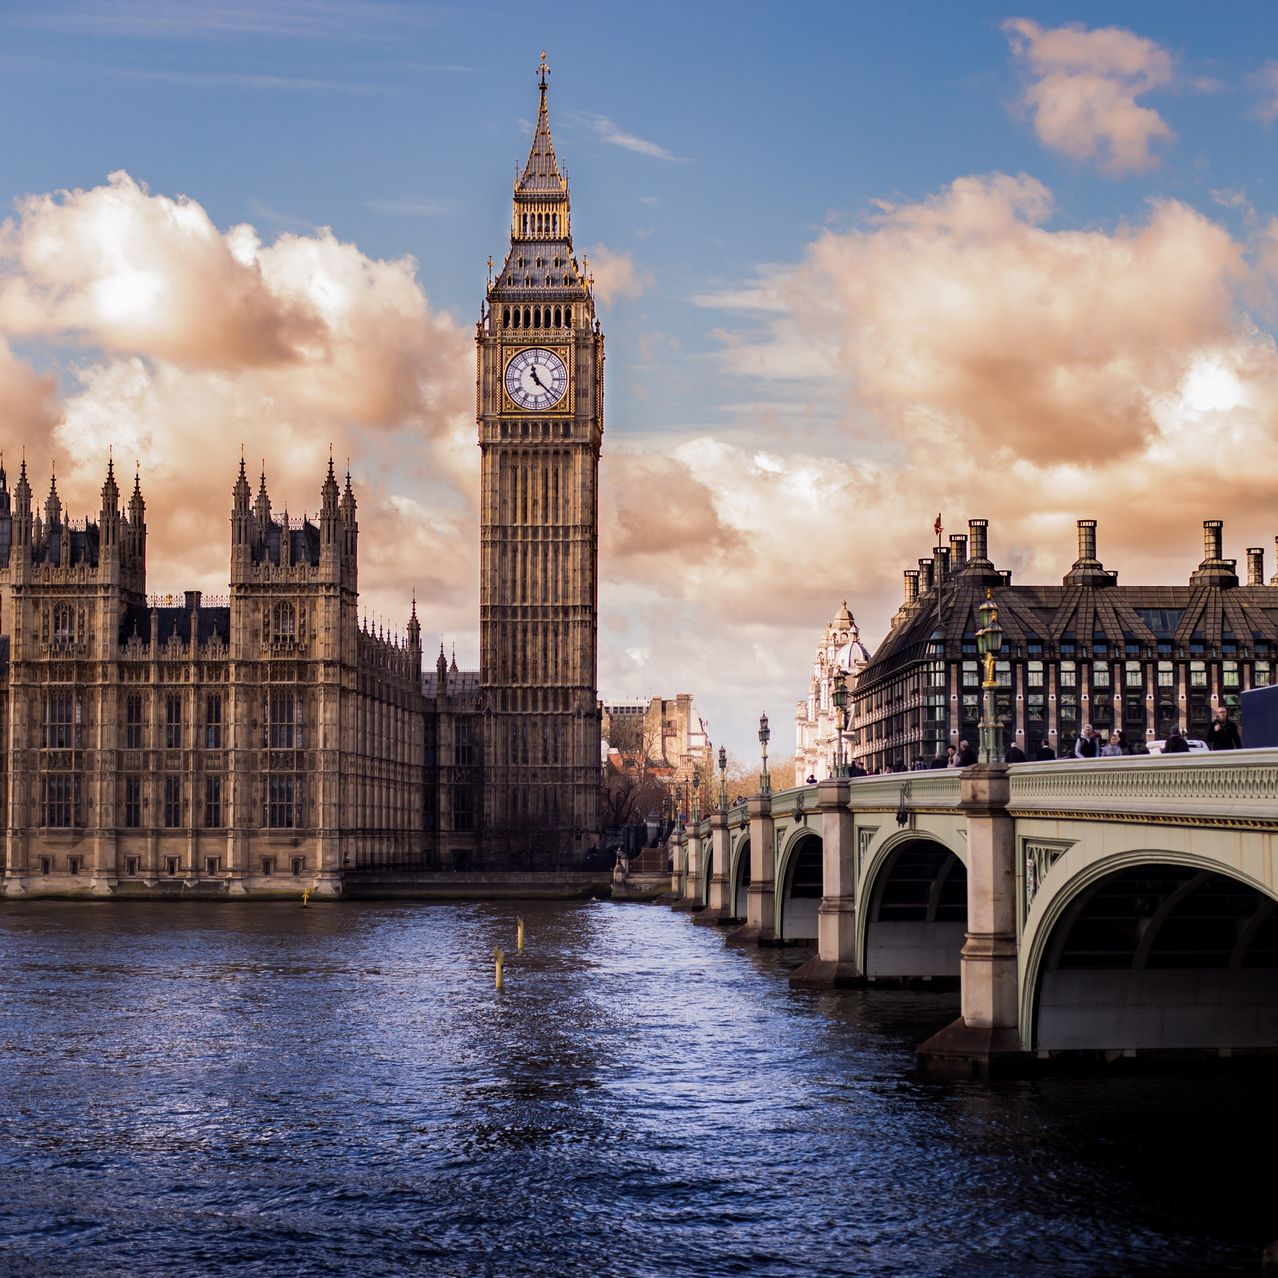 Tickets sold for trips to London over Christmas jumped 20% this season, and hoteliers say many high-end properties will be full on the holidays for the very first time in a number of years. The strong U.S. dollar makes Europe a bargain.